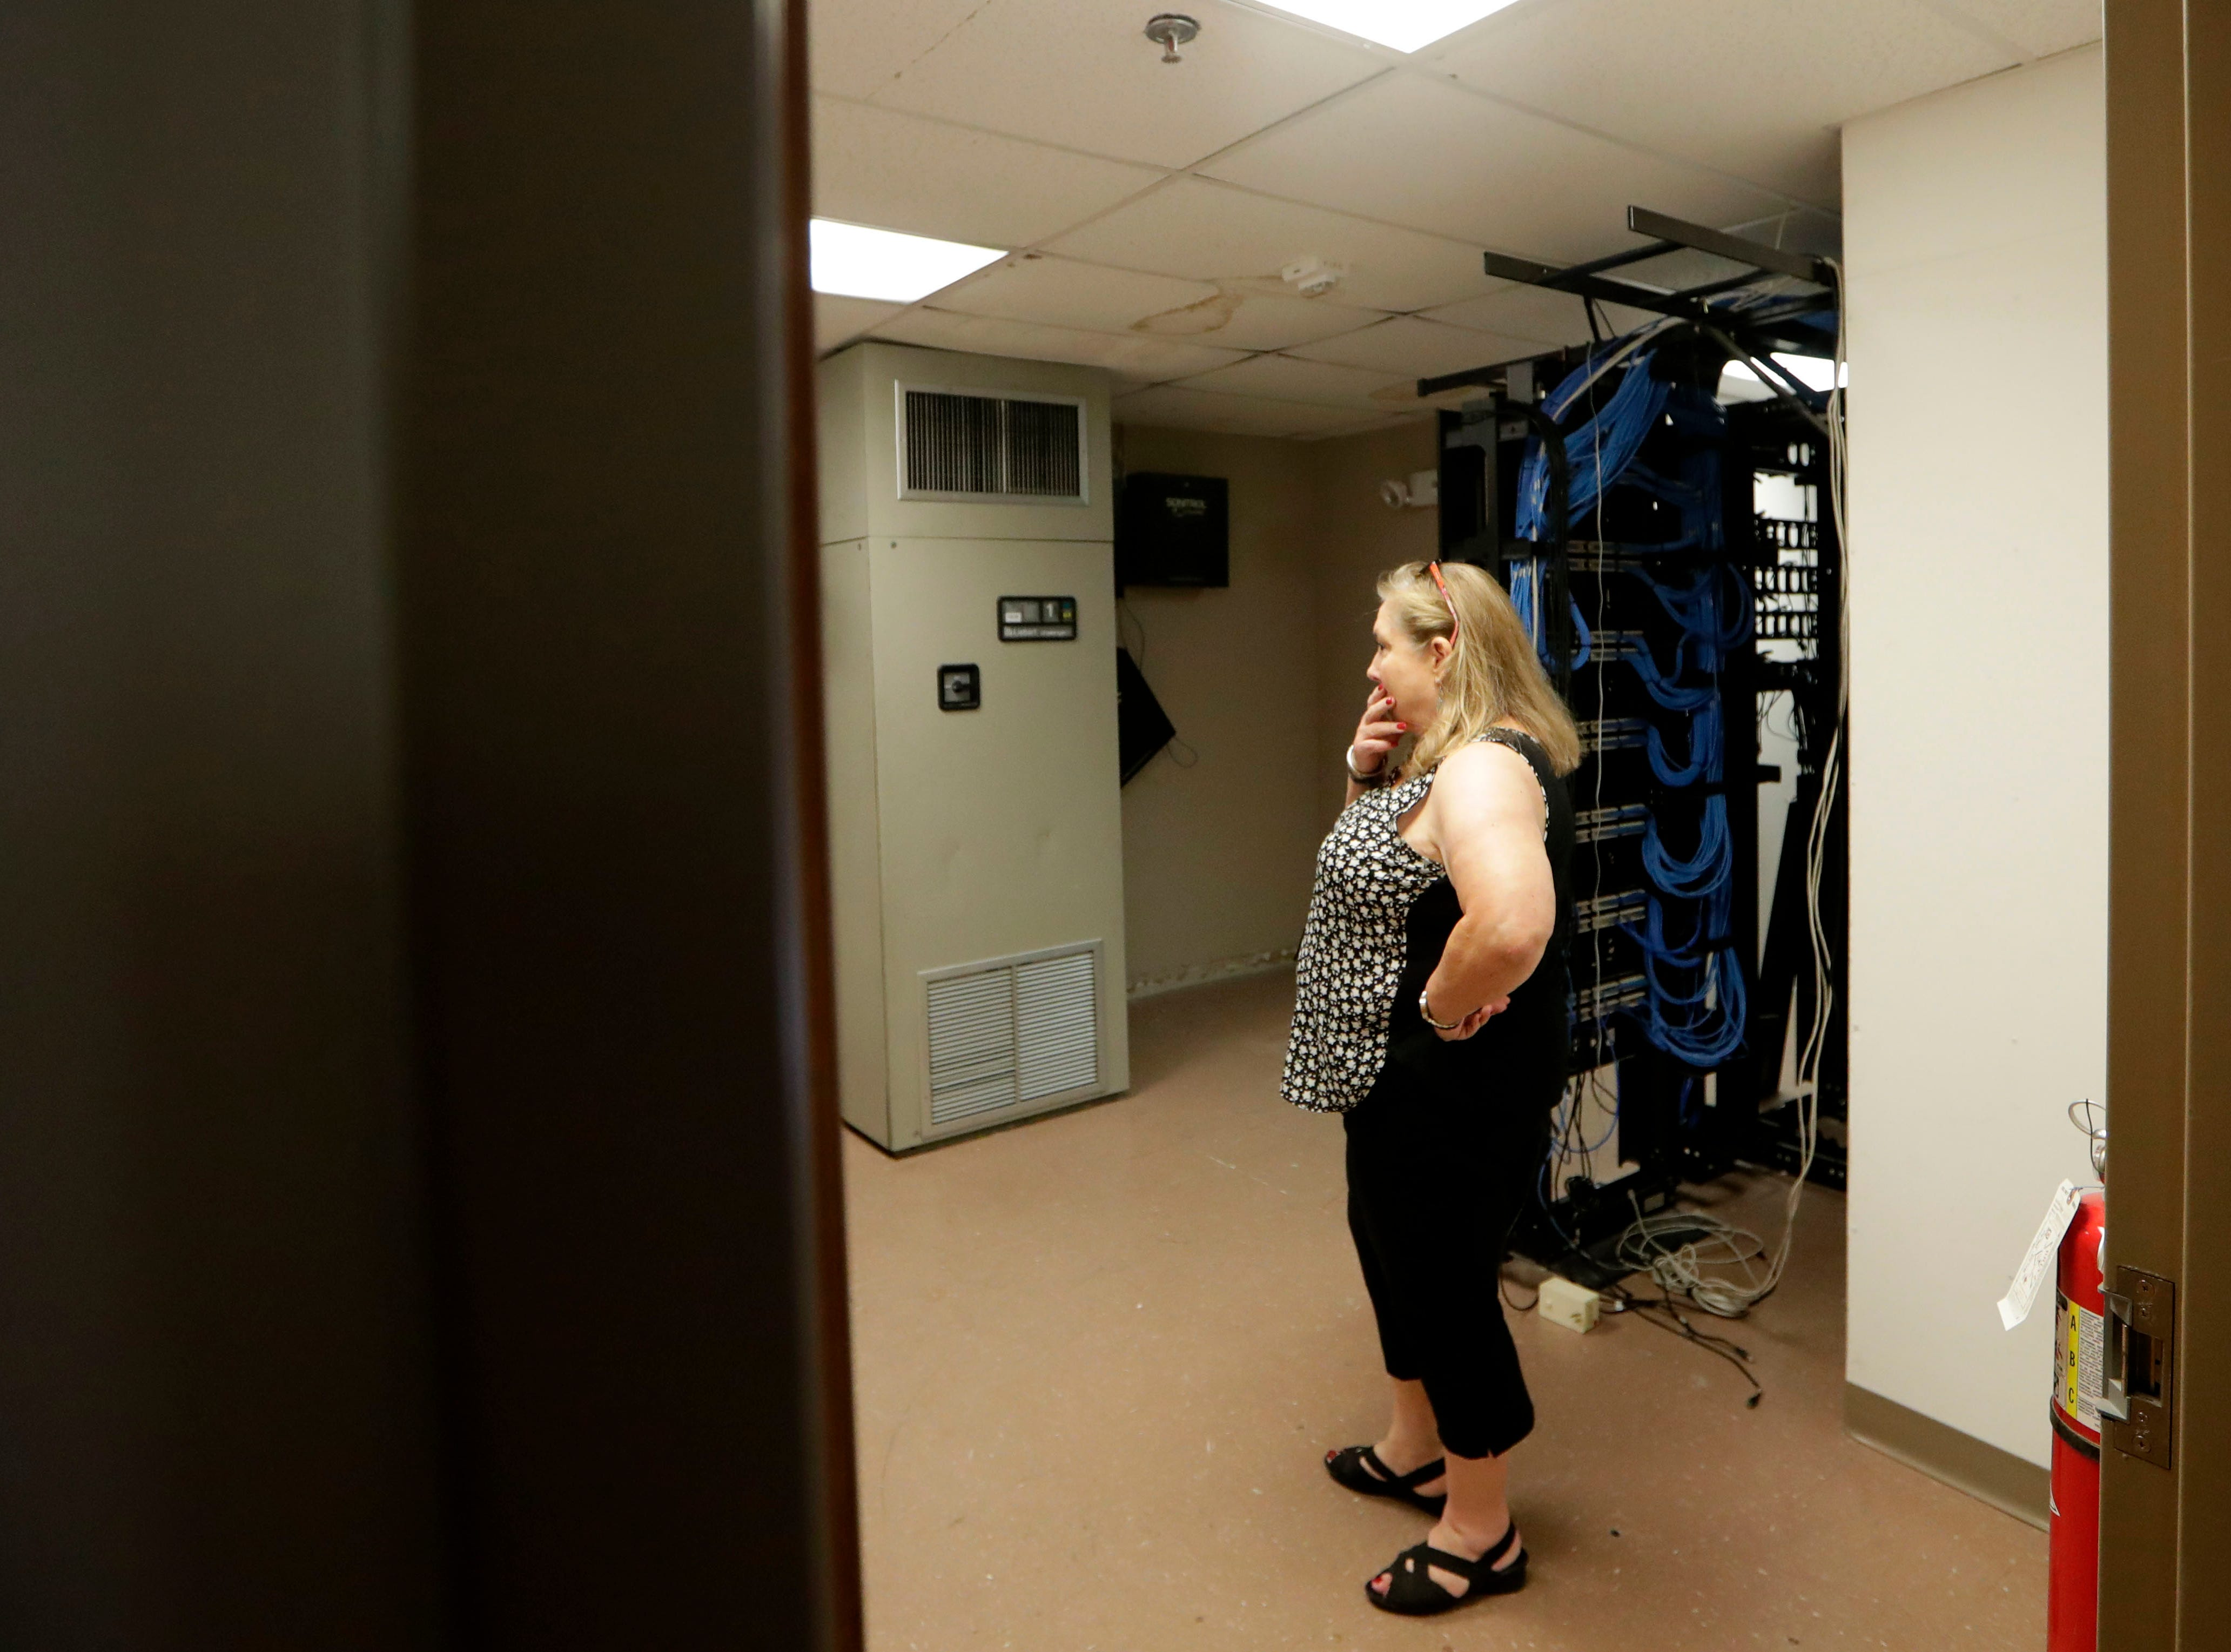 Judy Donahue, who works with the city's real estate department, looks at a room full of wires and electrical equipment as she tours office space at the Northwood Centre Wednesday, May 8, 2019.